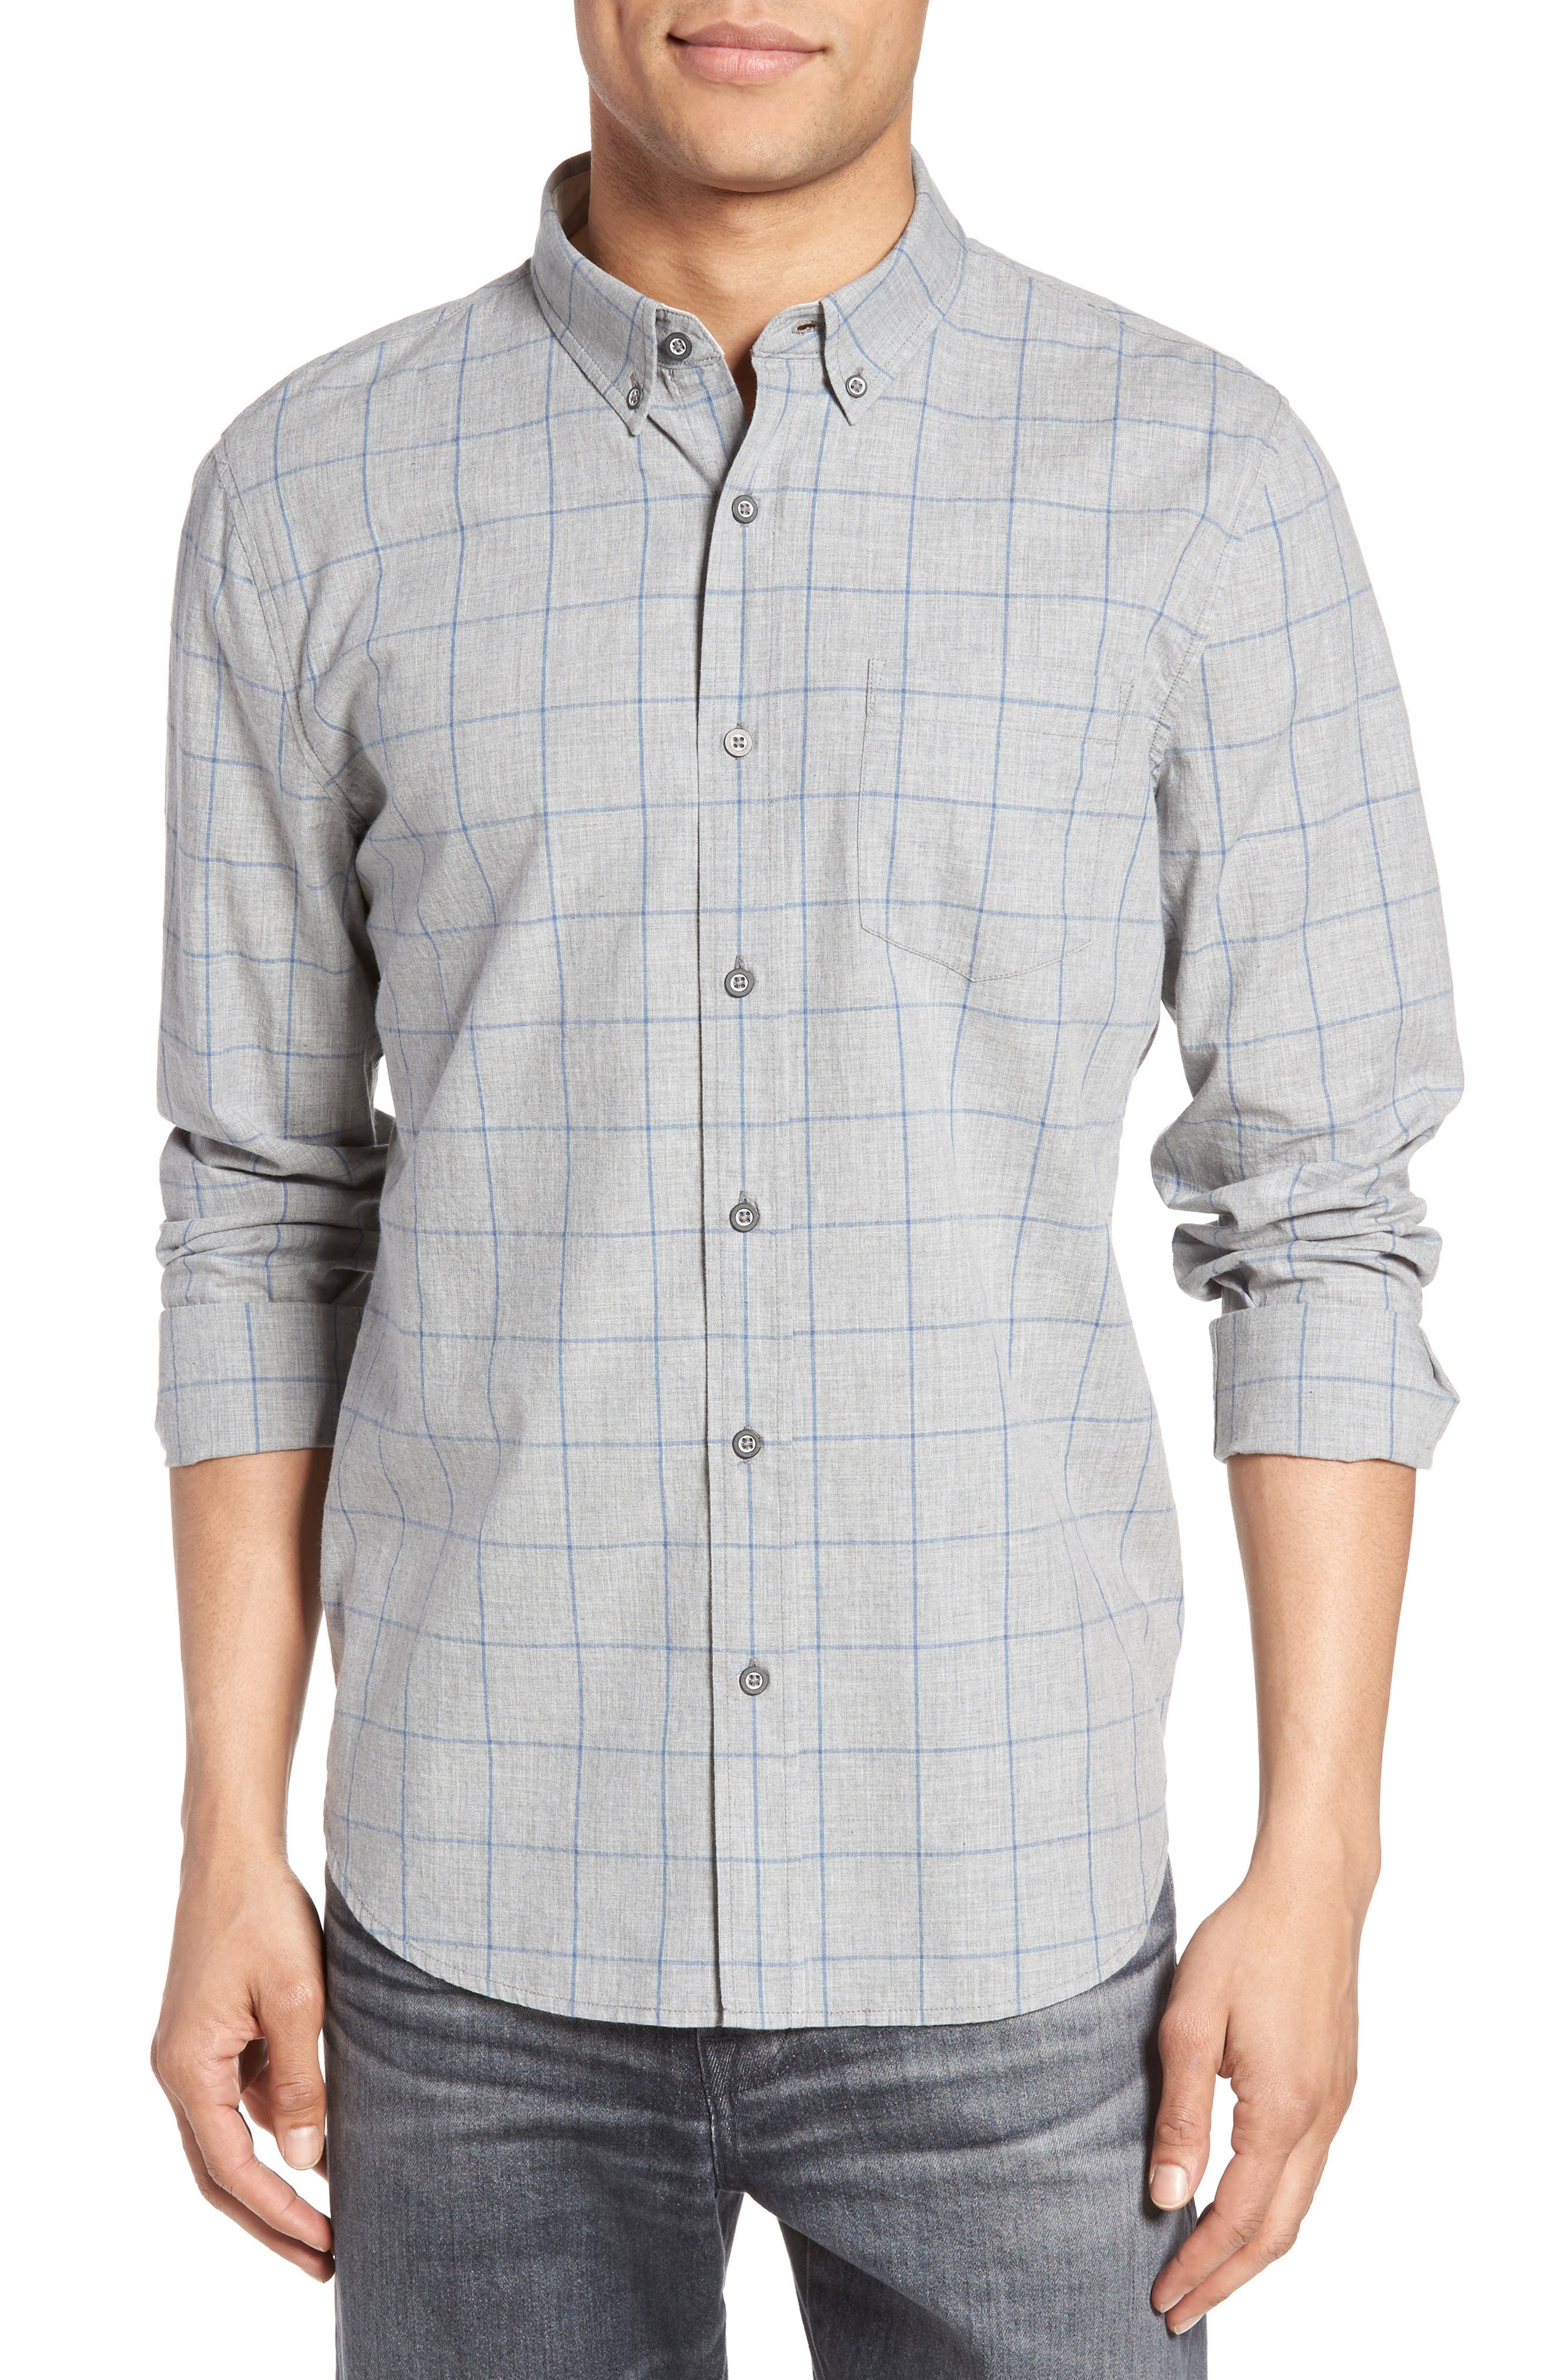 Grady Cotton Sport Shirt,                             Main thumbnail 1, color,                             087